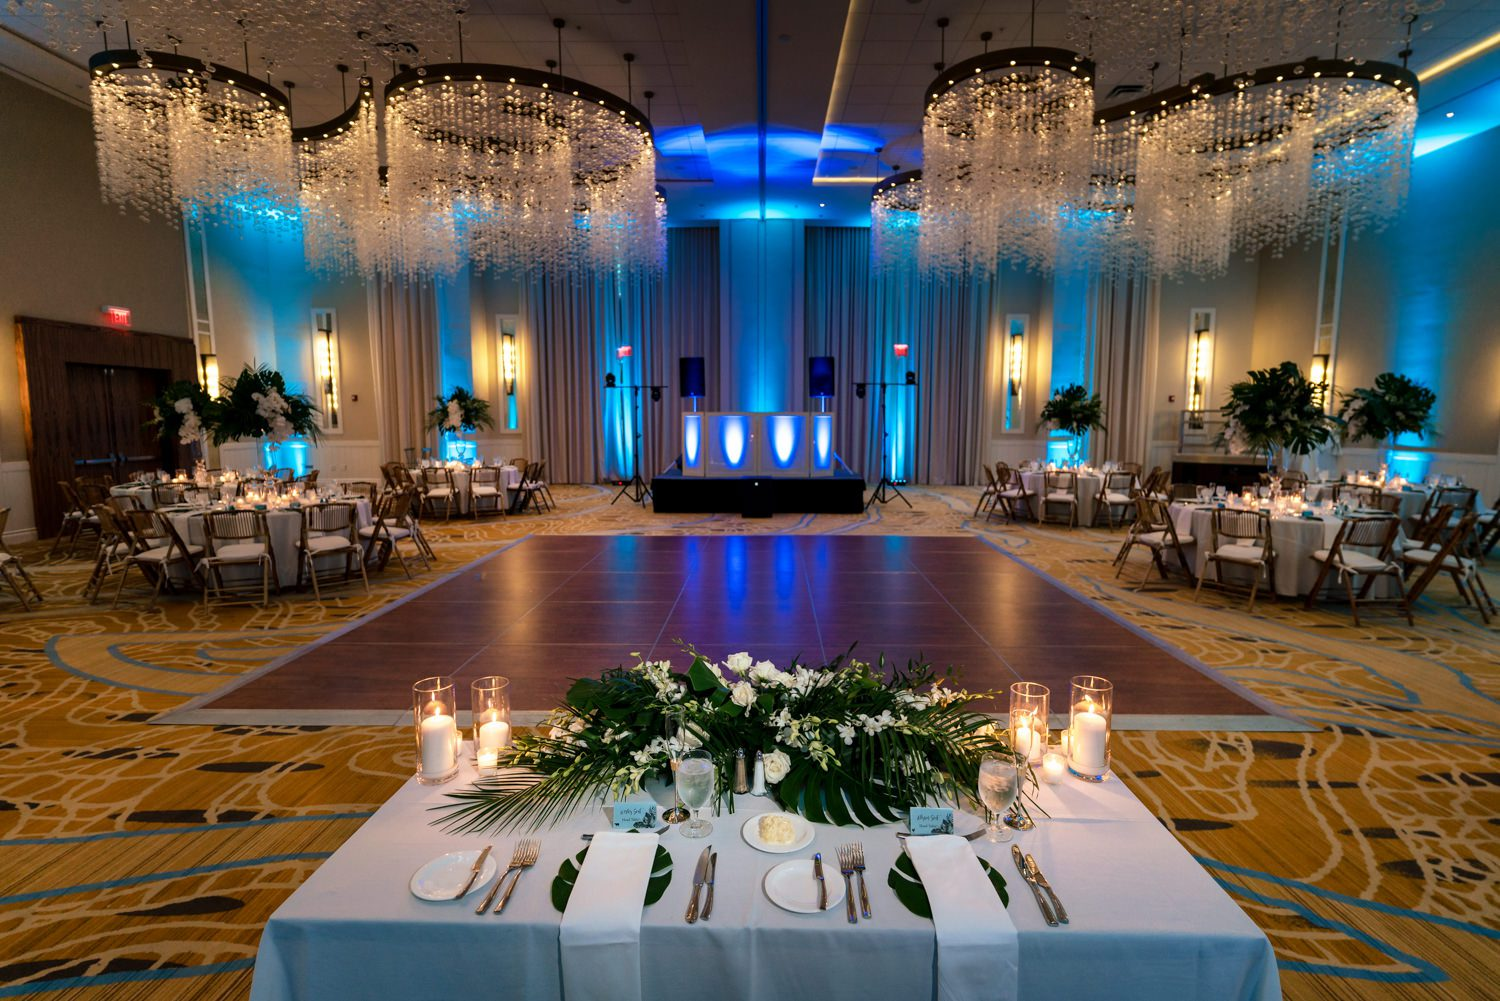 Table for bride and groom at wedding reception in playa largo